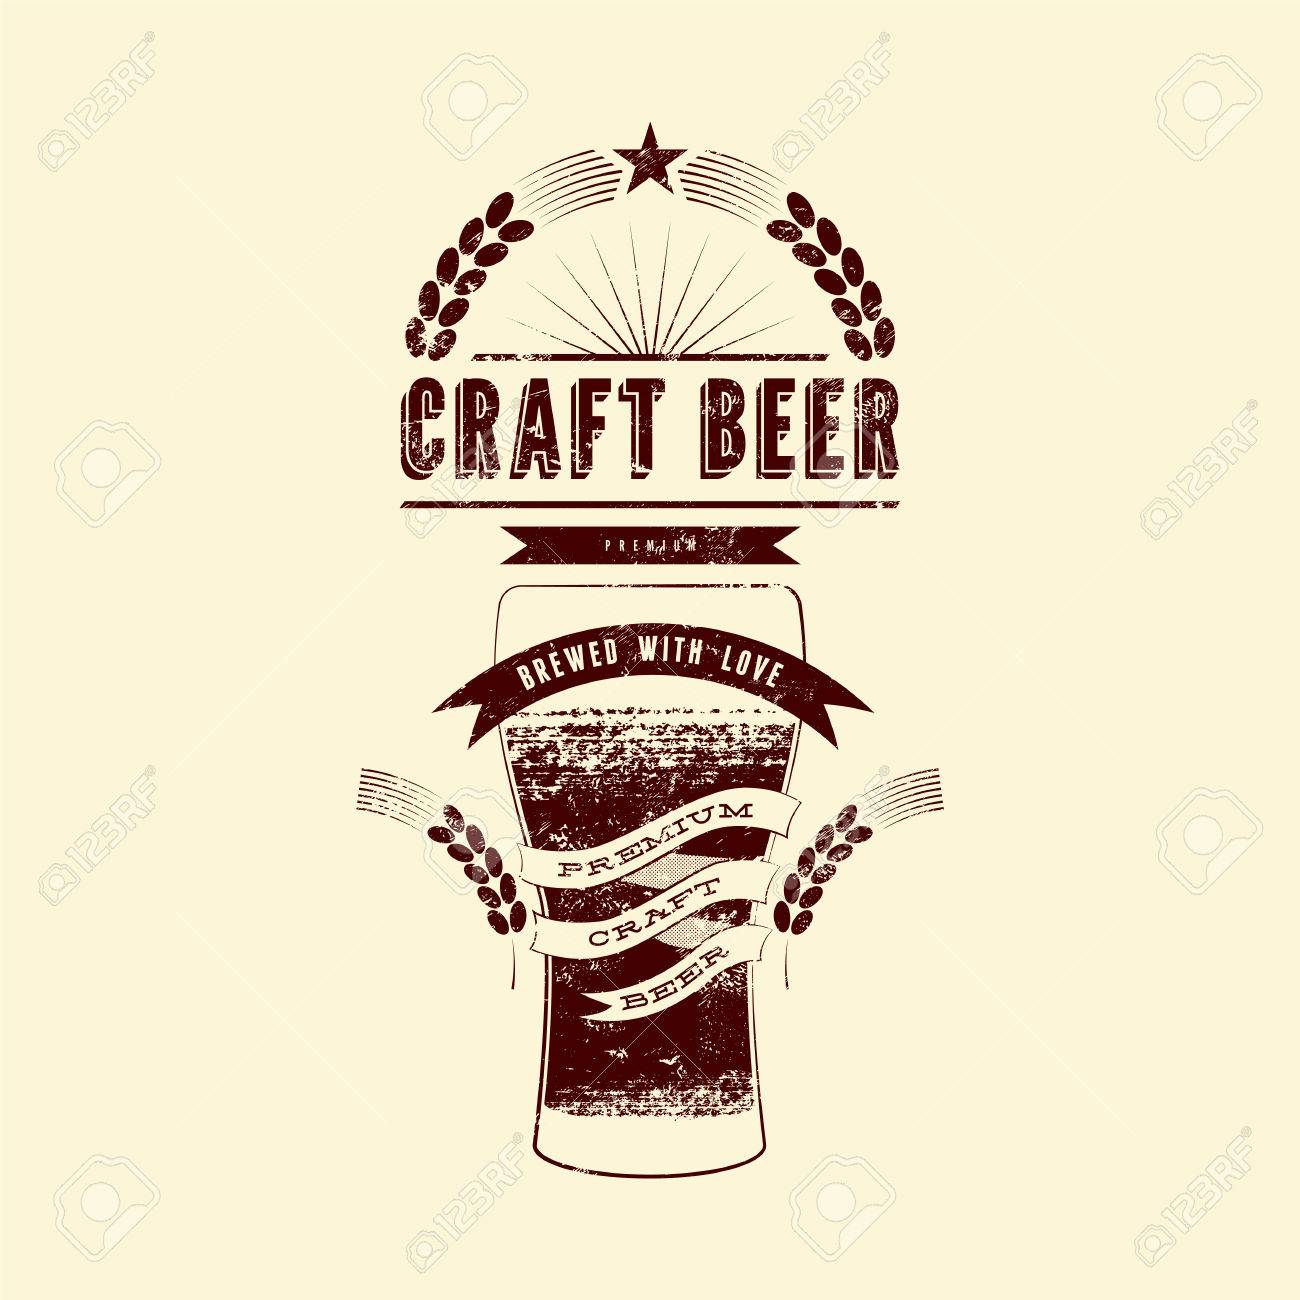 Craft Beer Label Vintage Grunge Style Beer Poster Vector